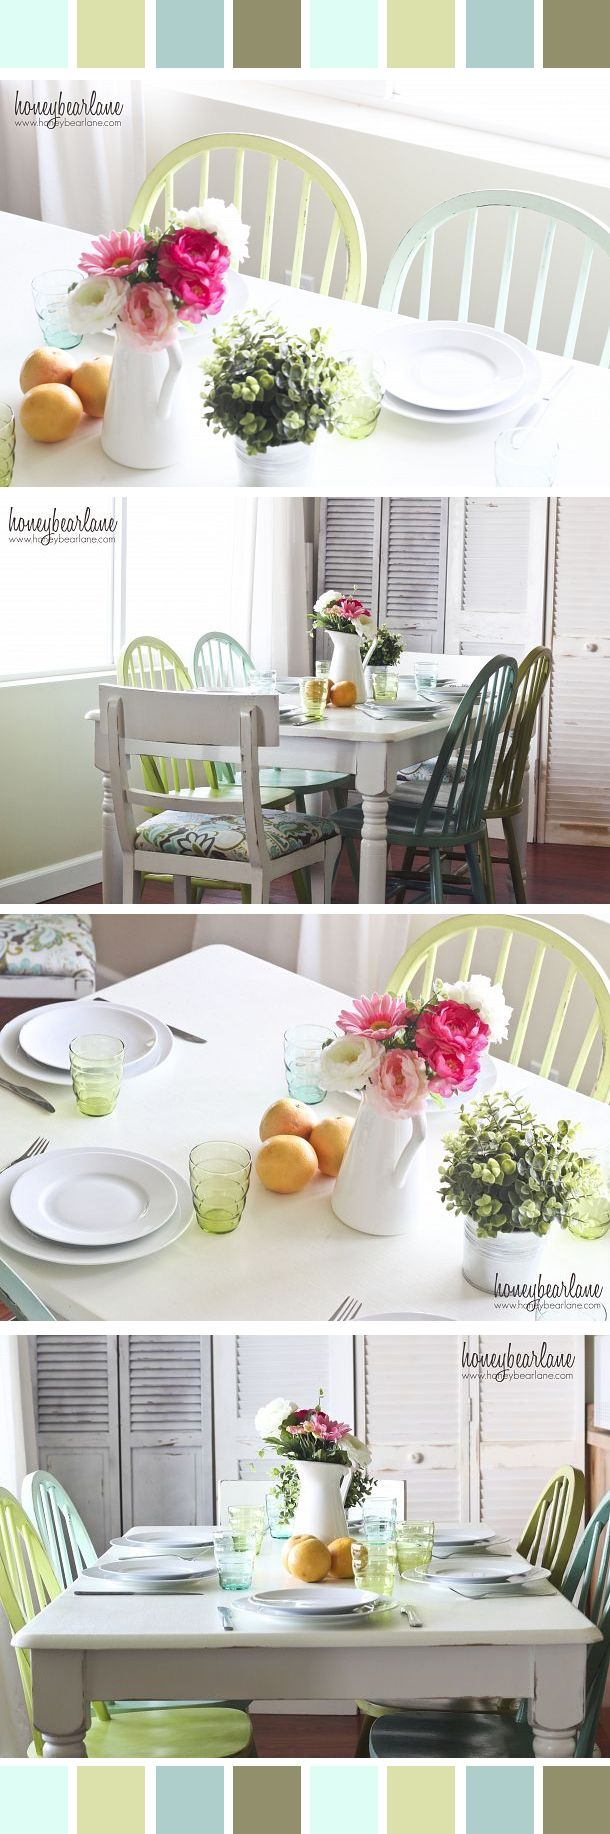 Dining Room Reveal | Mismatched chairs, Room and Kitchens